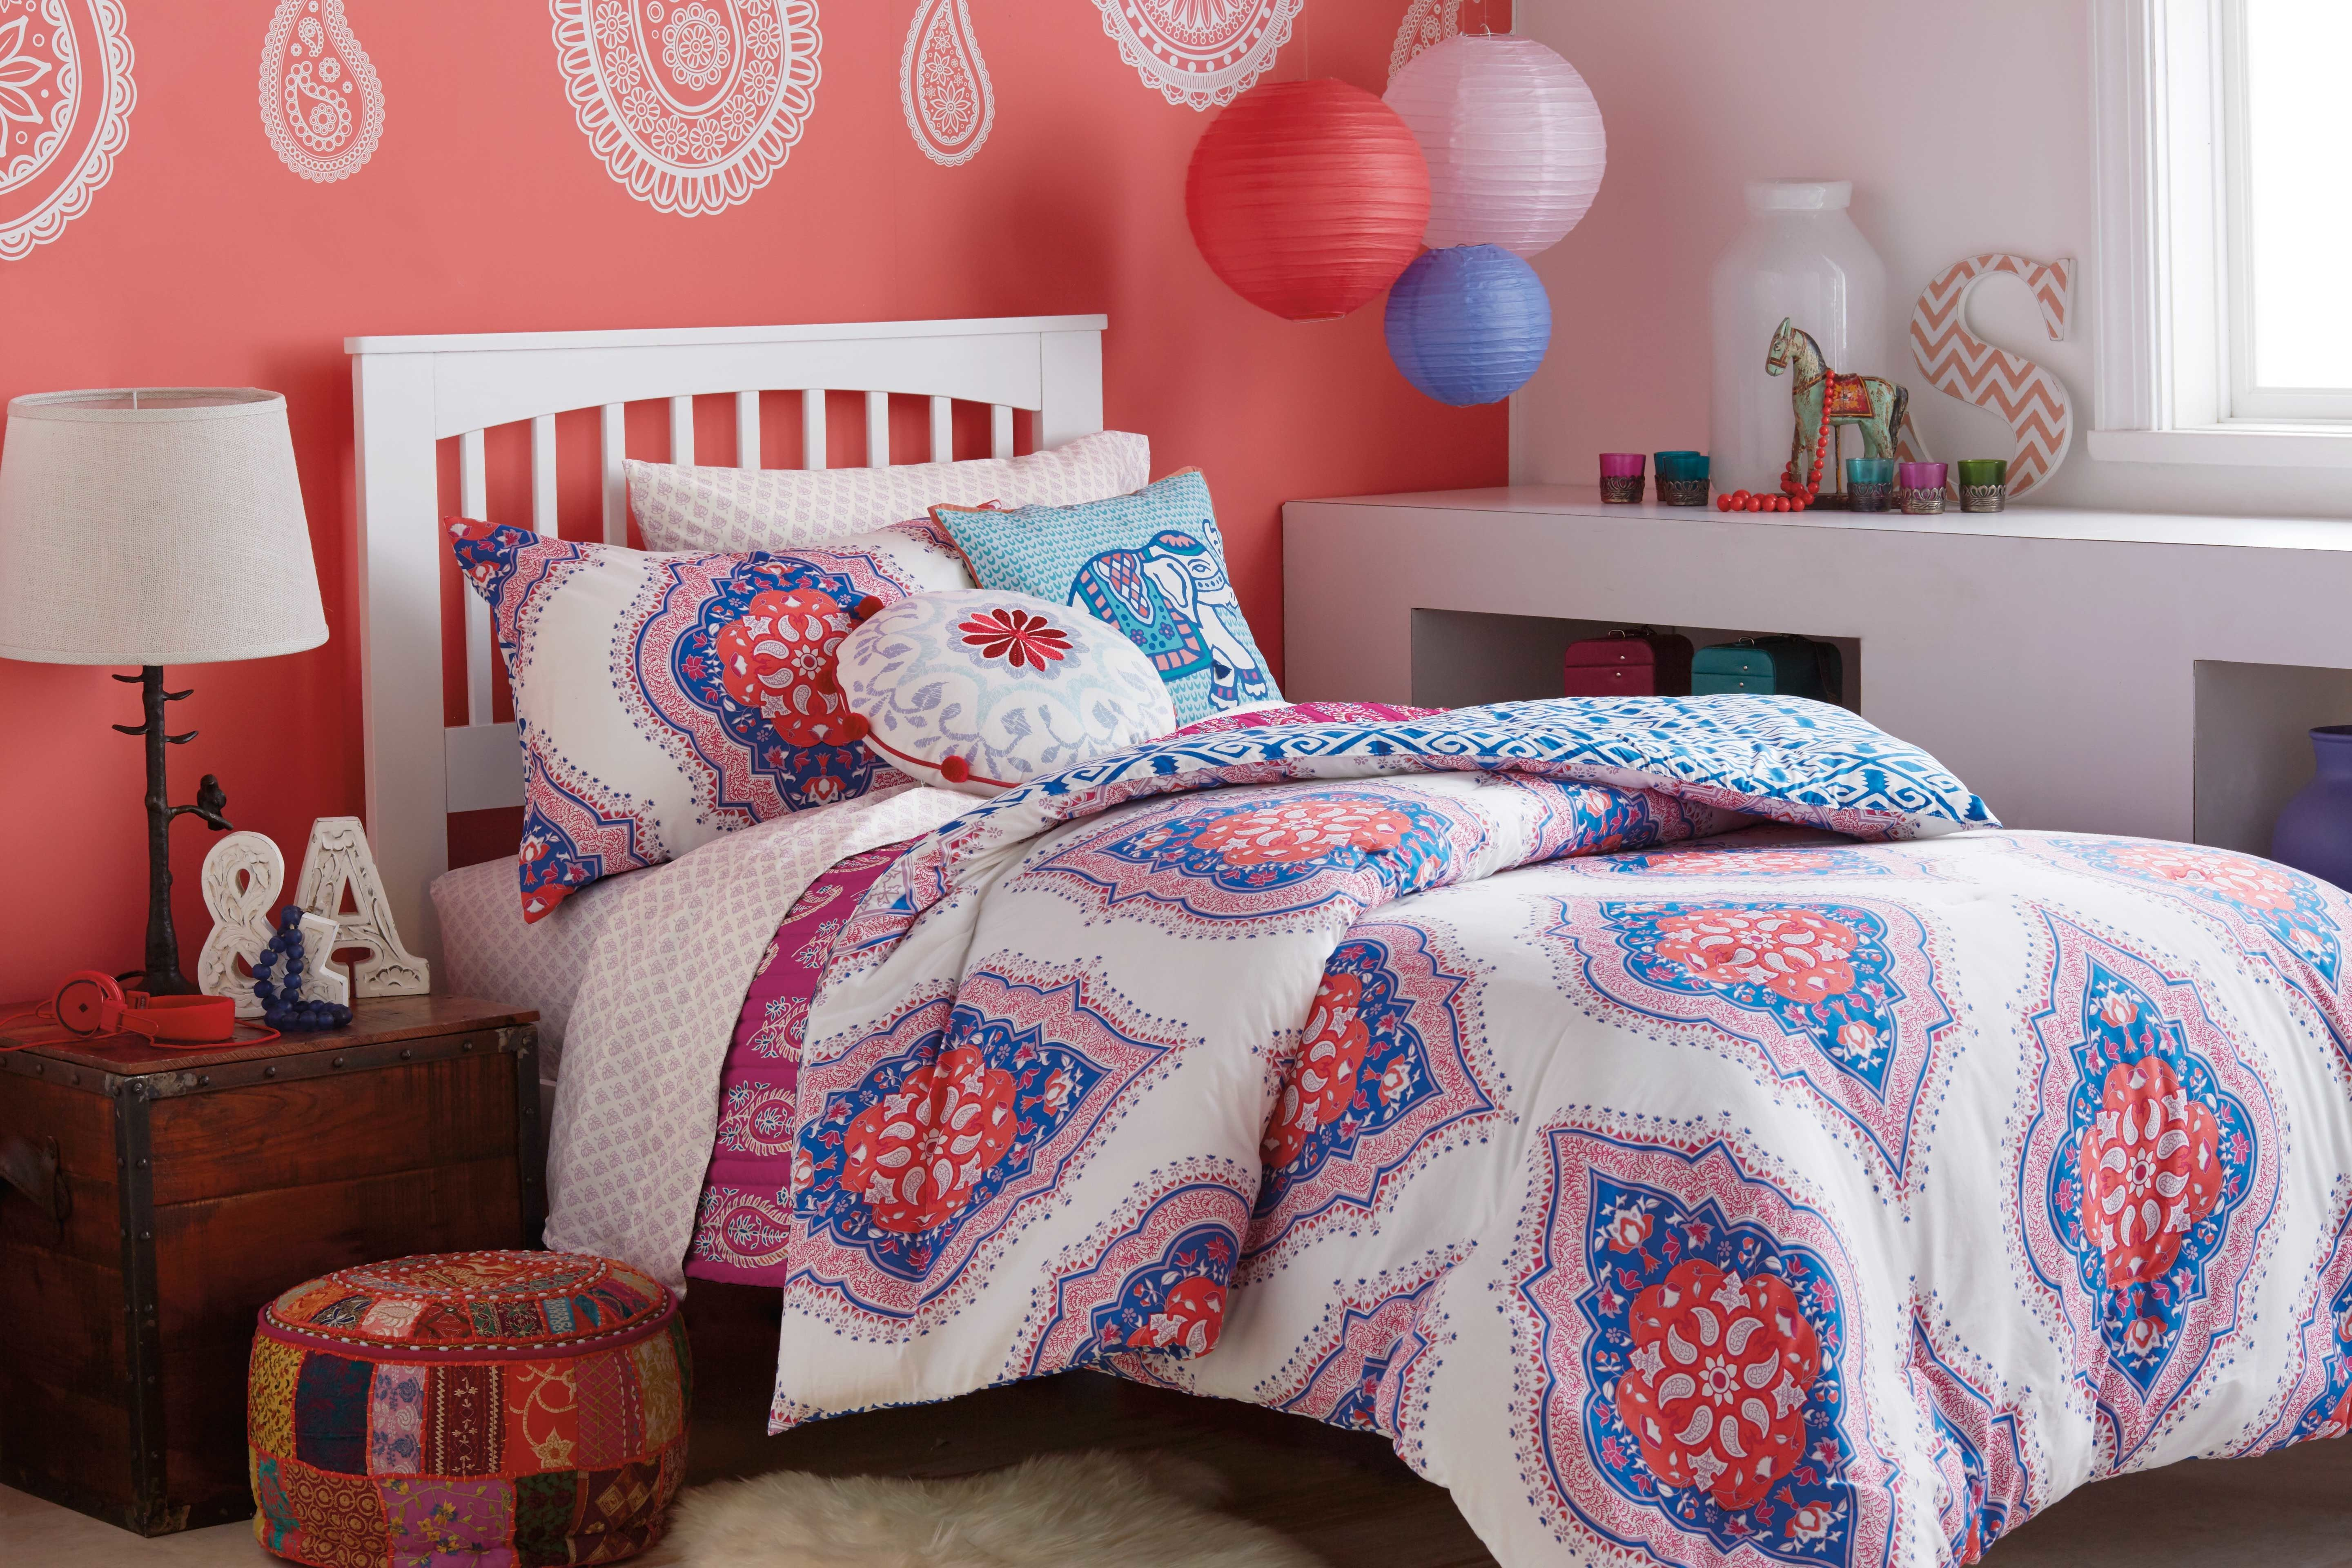 s quilted bedding image bed popsugar robshaw john collection home